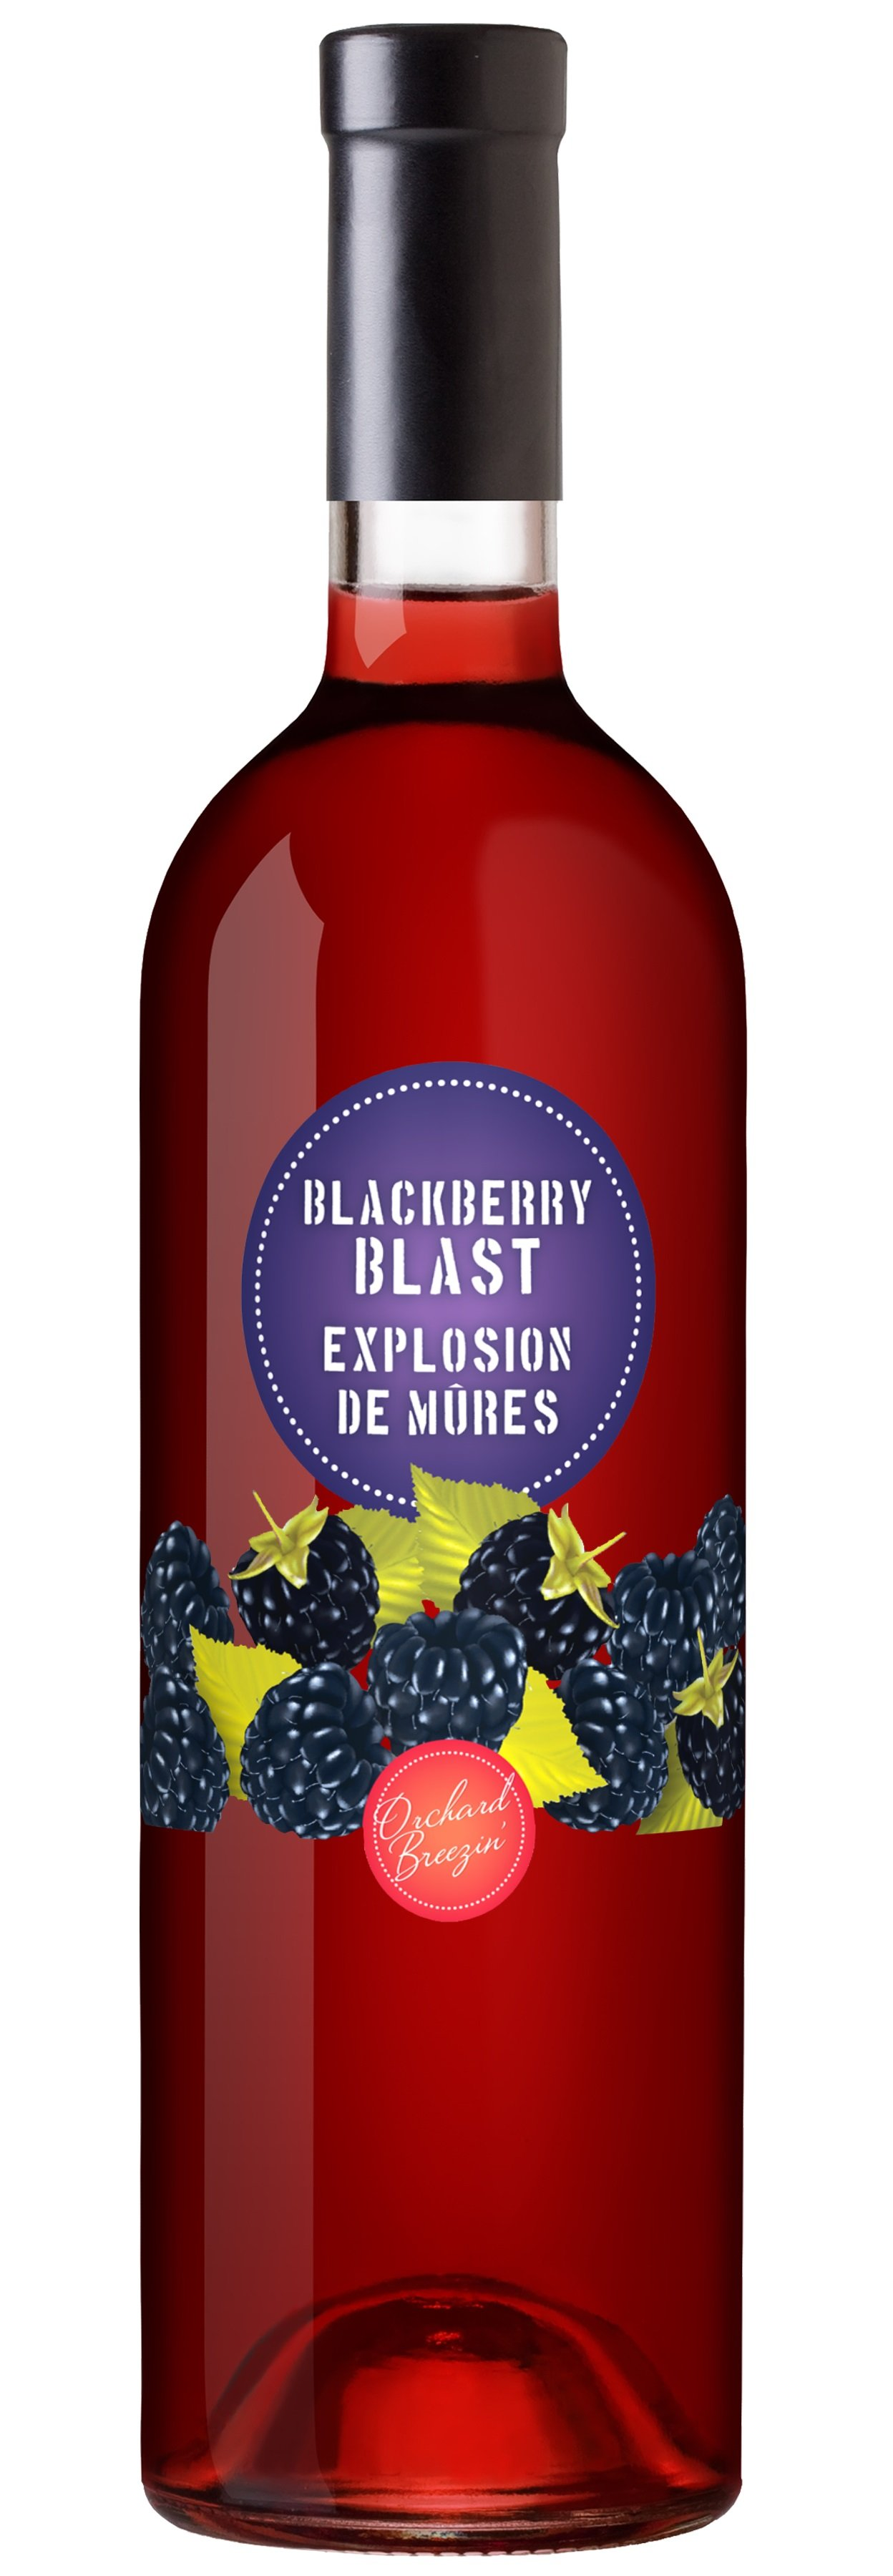 https://0901.nccdn.net/4_2/000/000/046/6ea/OB_Bottle_BlackberryBlast.jpg